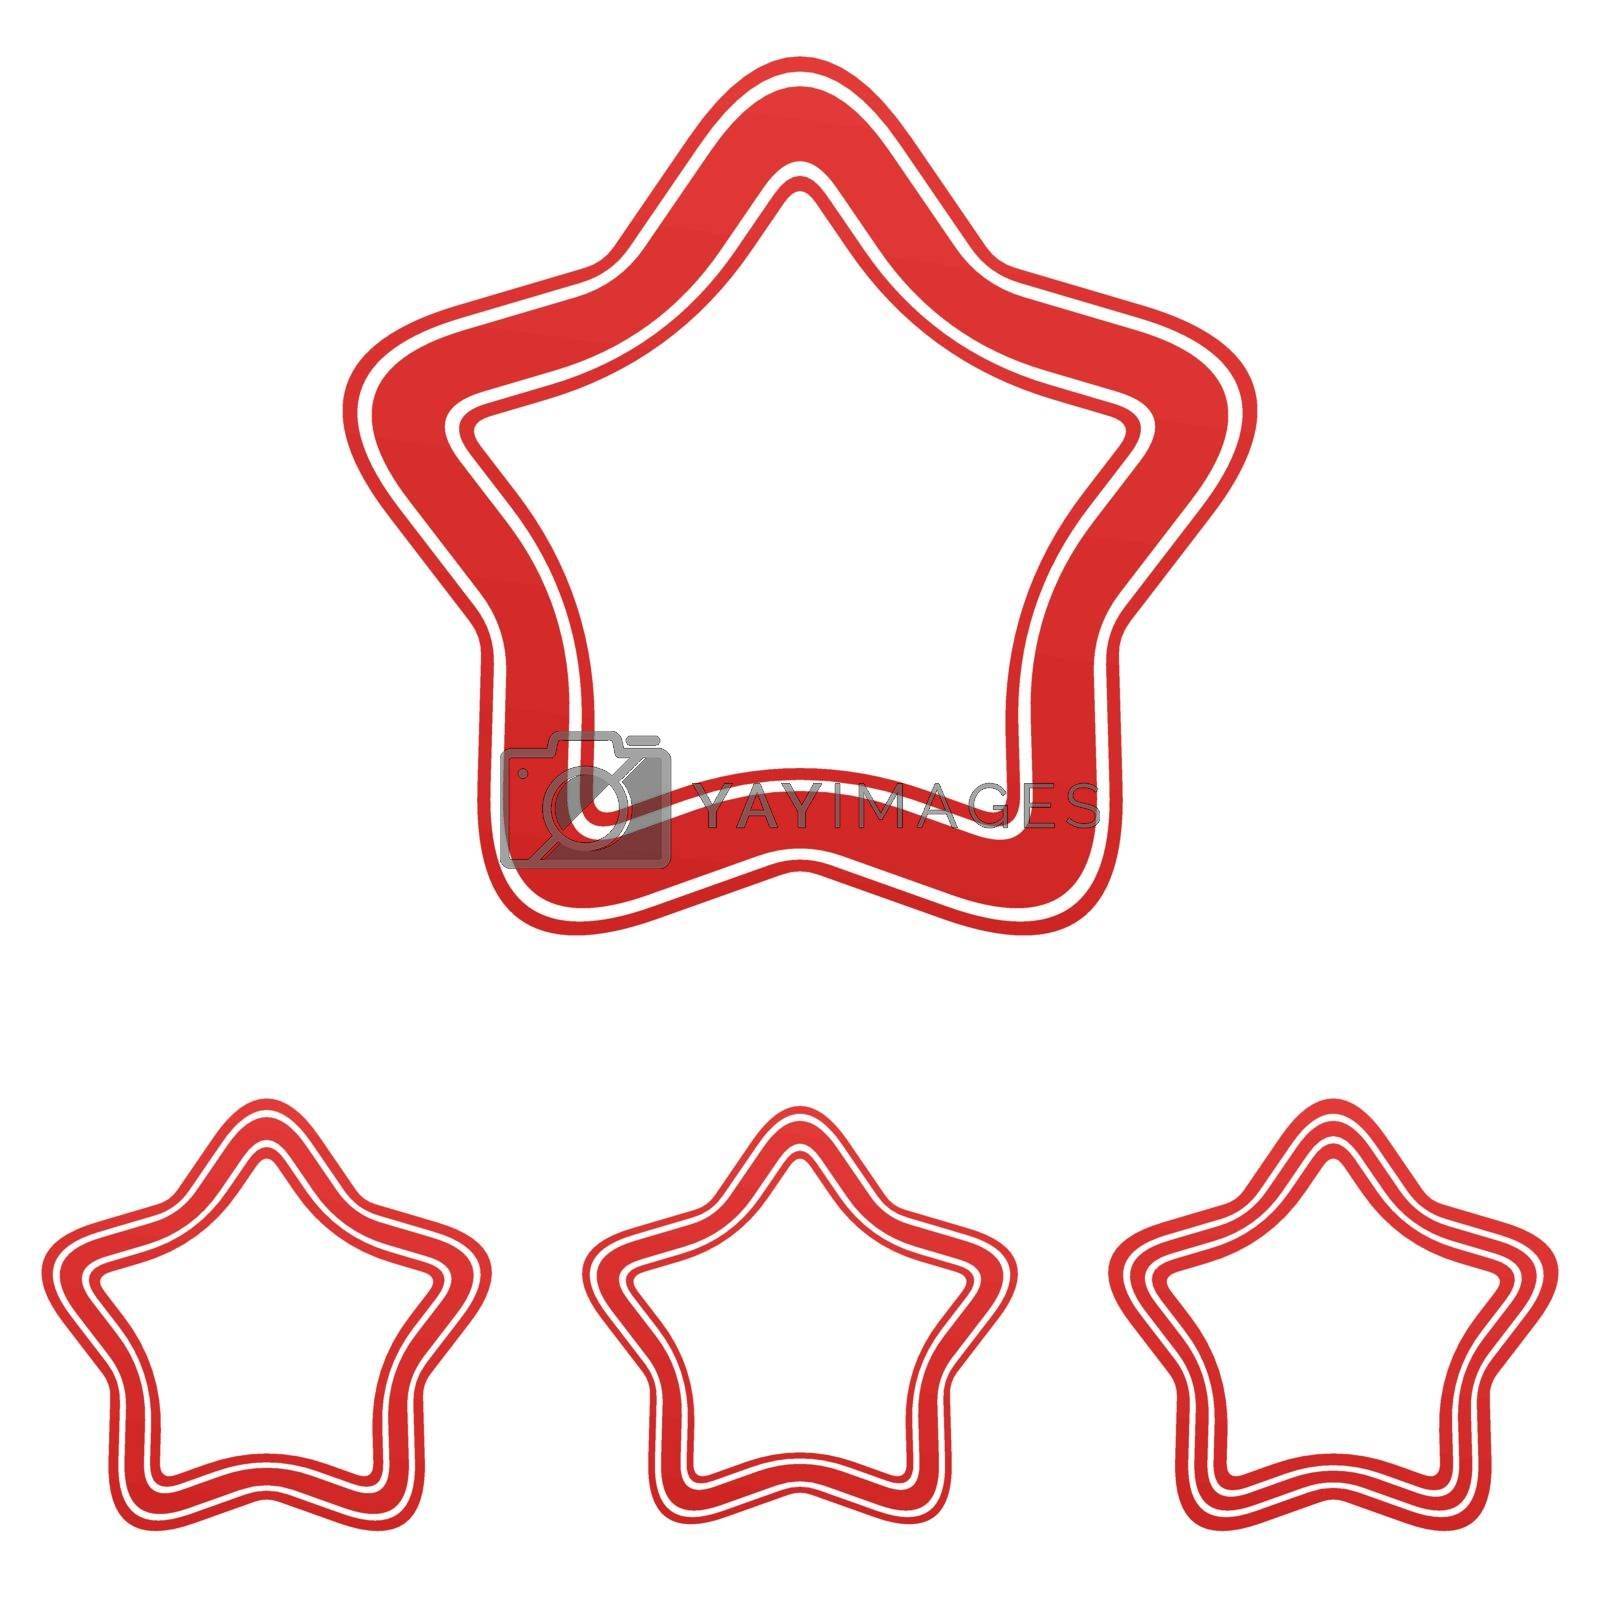 Royalty free image of Red line star logo design set by davidzydd